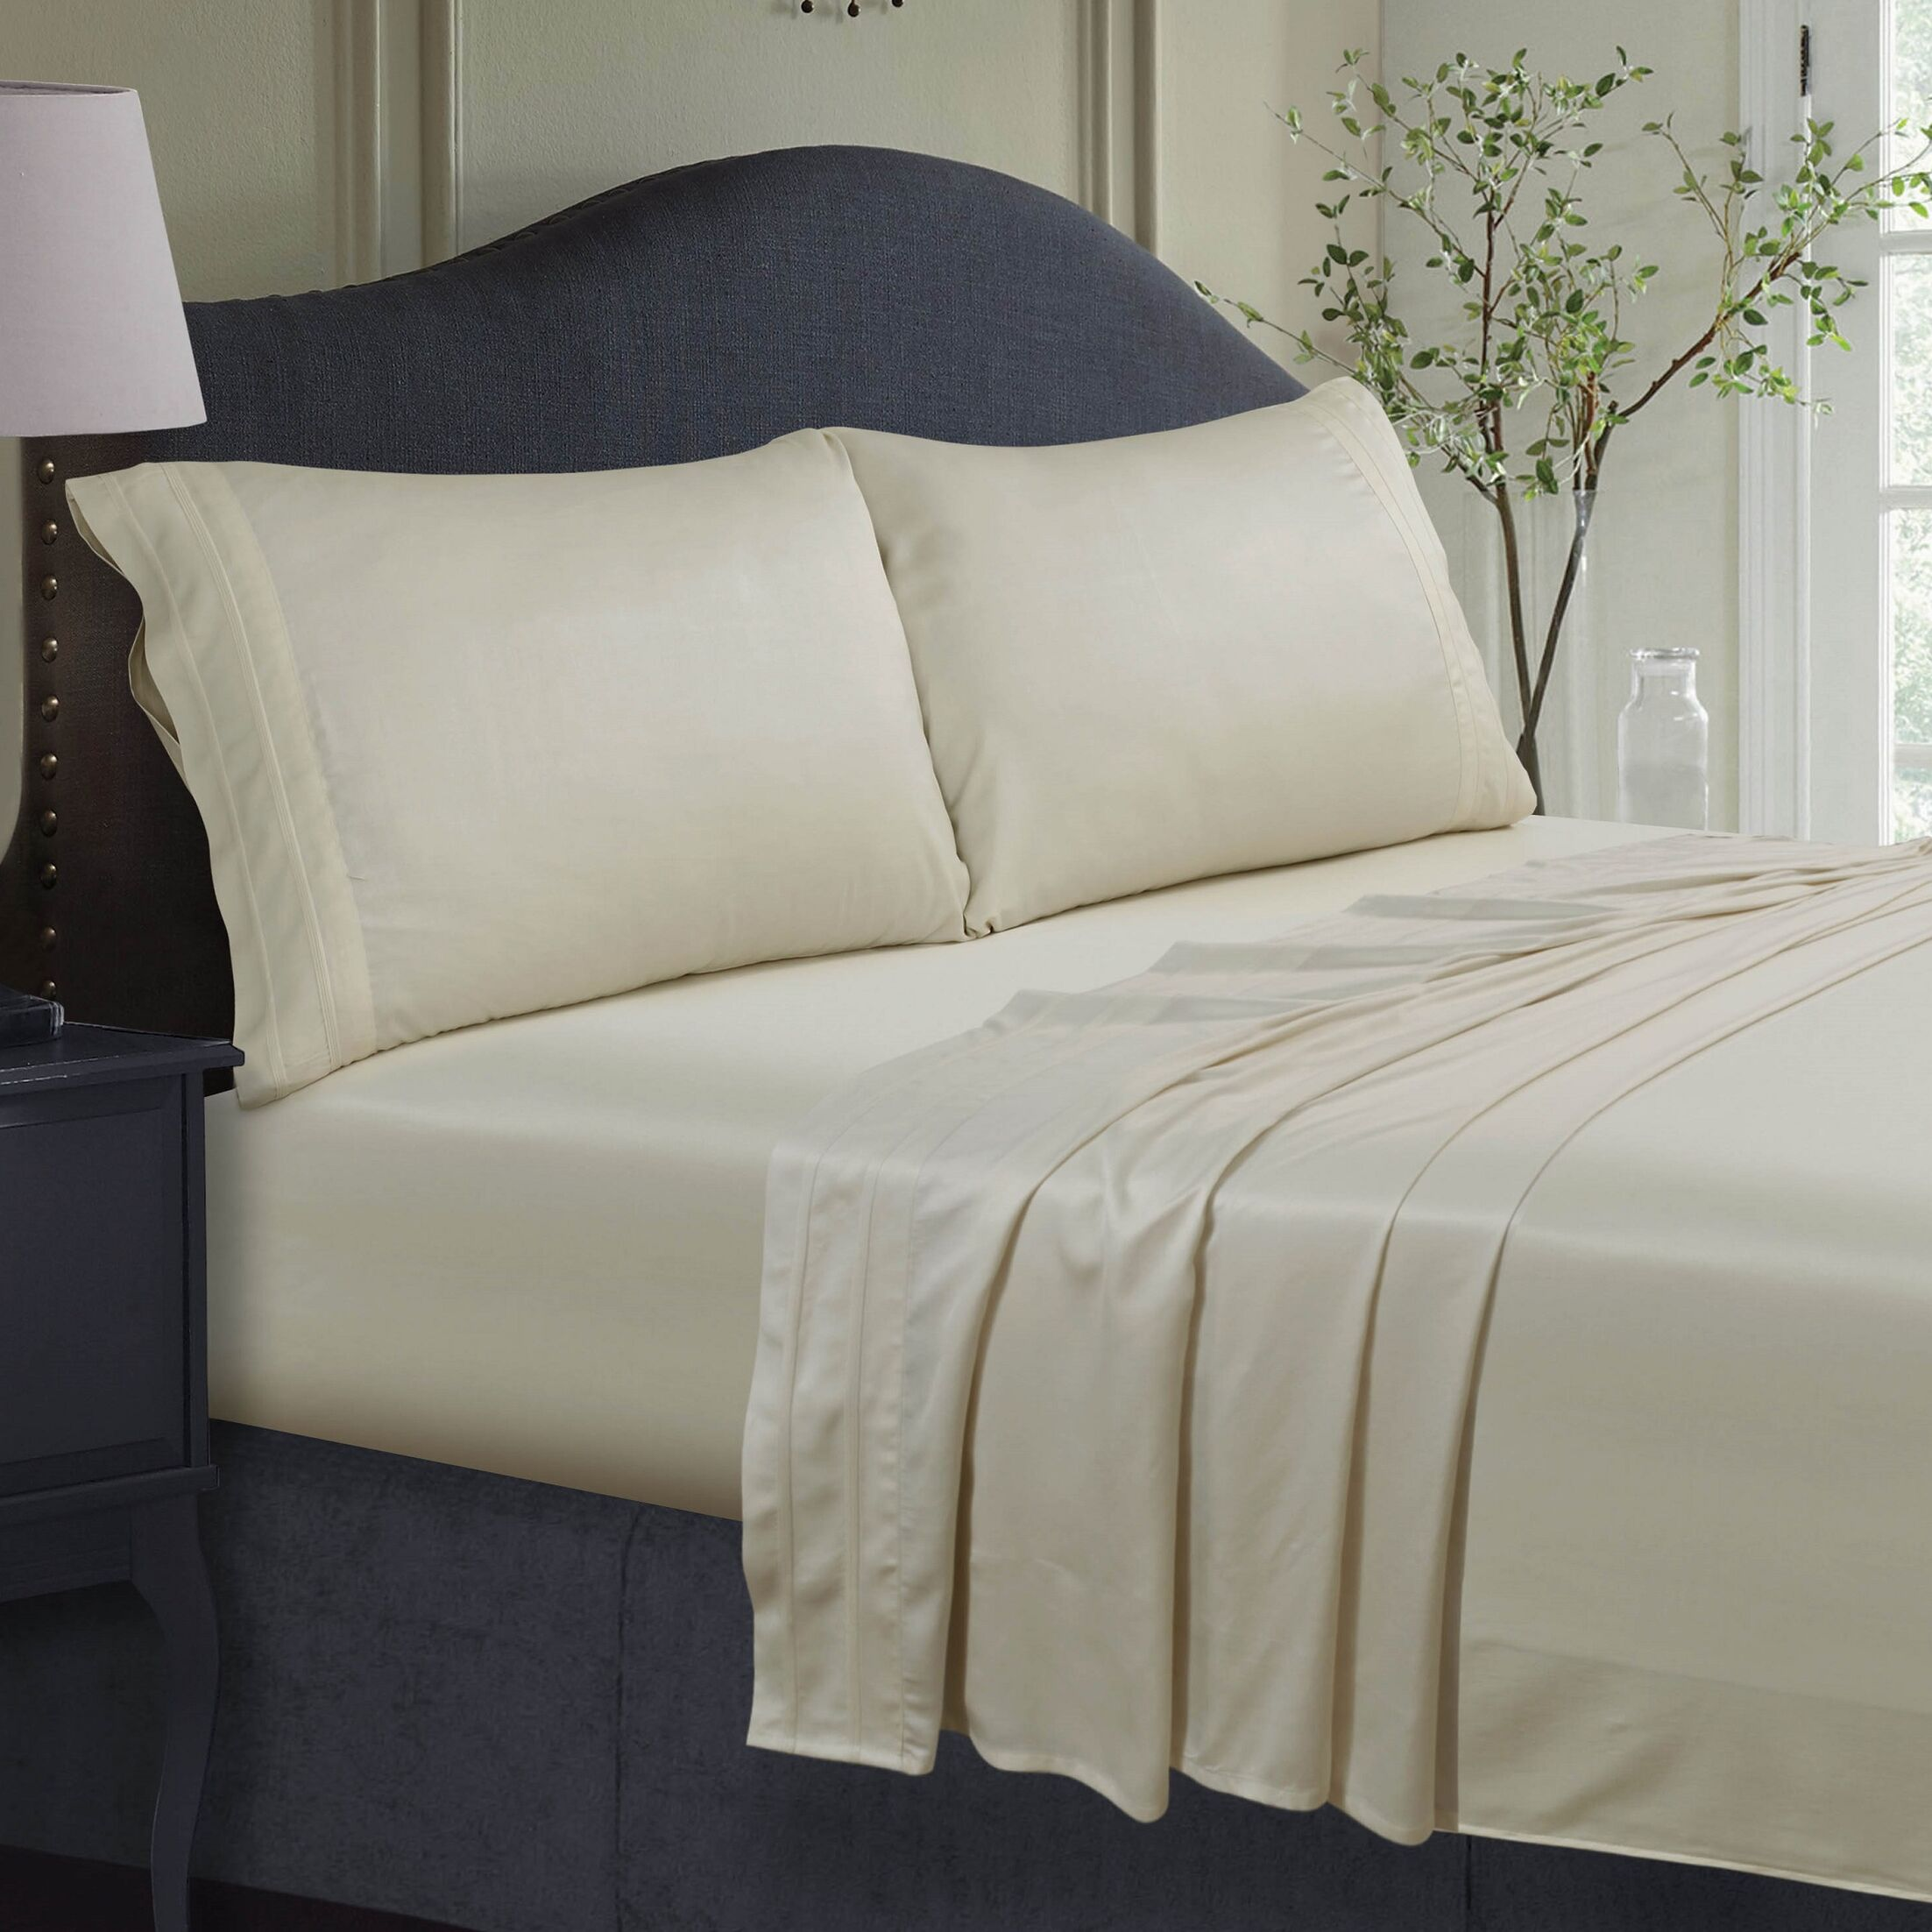 300 Thread Count Extra Deep Pocket Sheet Set Color: Ivory, Size: Full